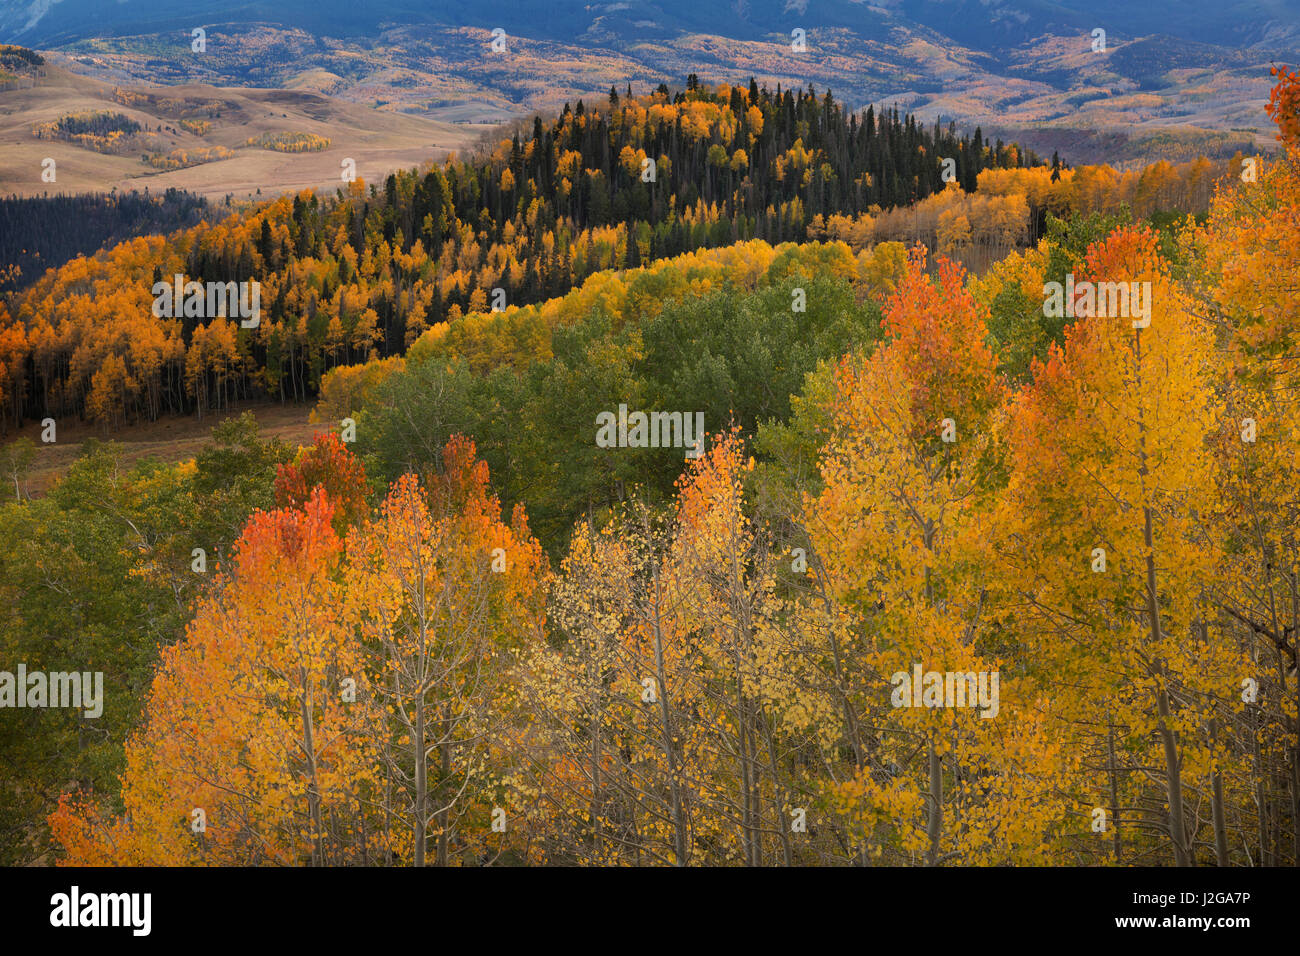 USA, Colorado, Uncompahgre National Forest. Autumn-colored forest. Credit as: Don Grall / Jaynes Gallery / DanitaDelimont.com - Stock Image